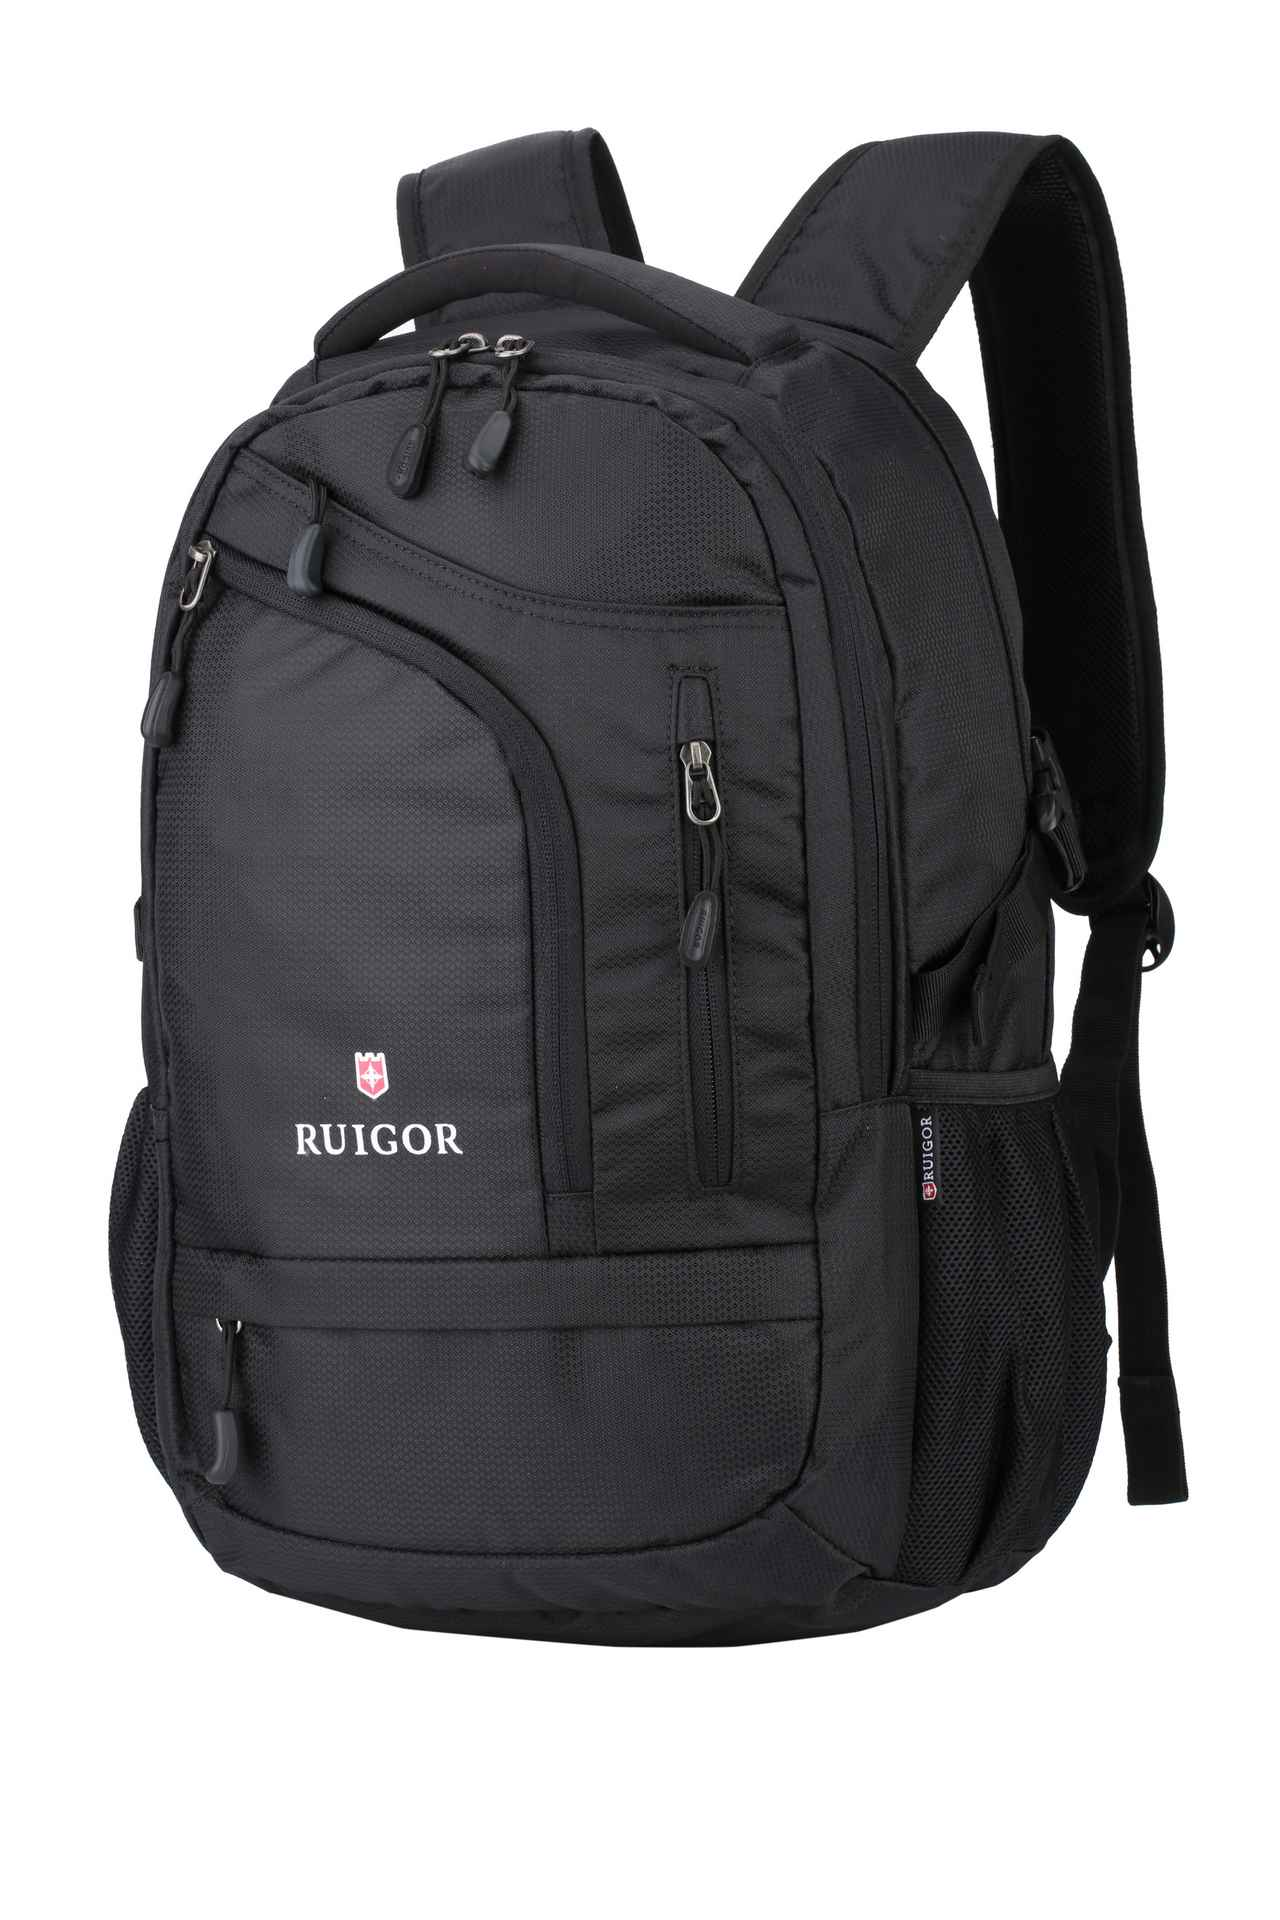 RUIGOR ACTIVE 66 Laptop Backpack Black